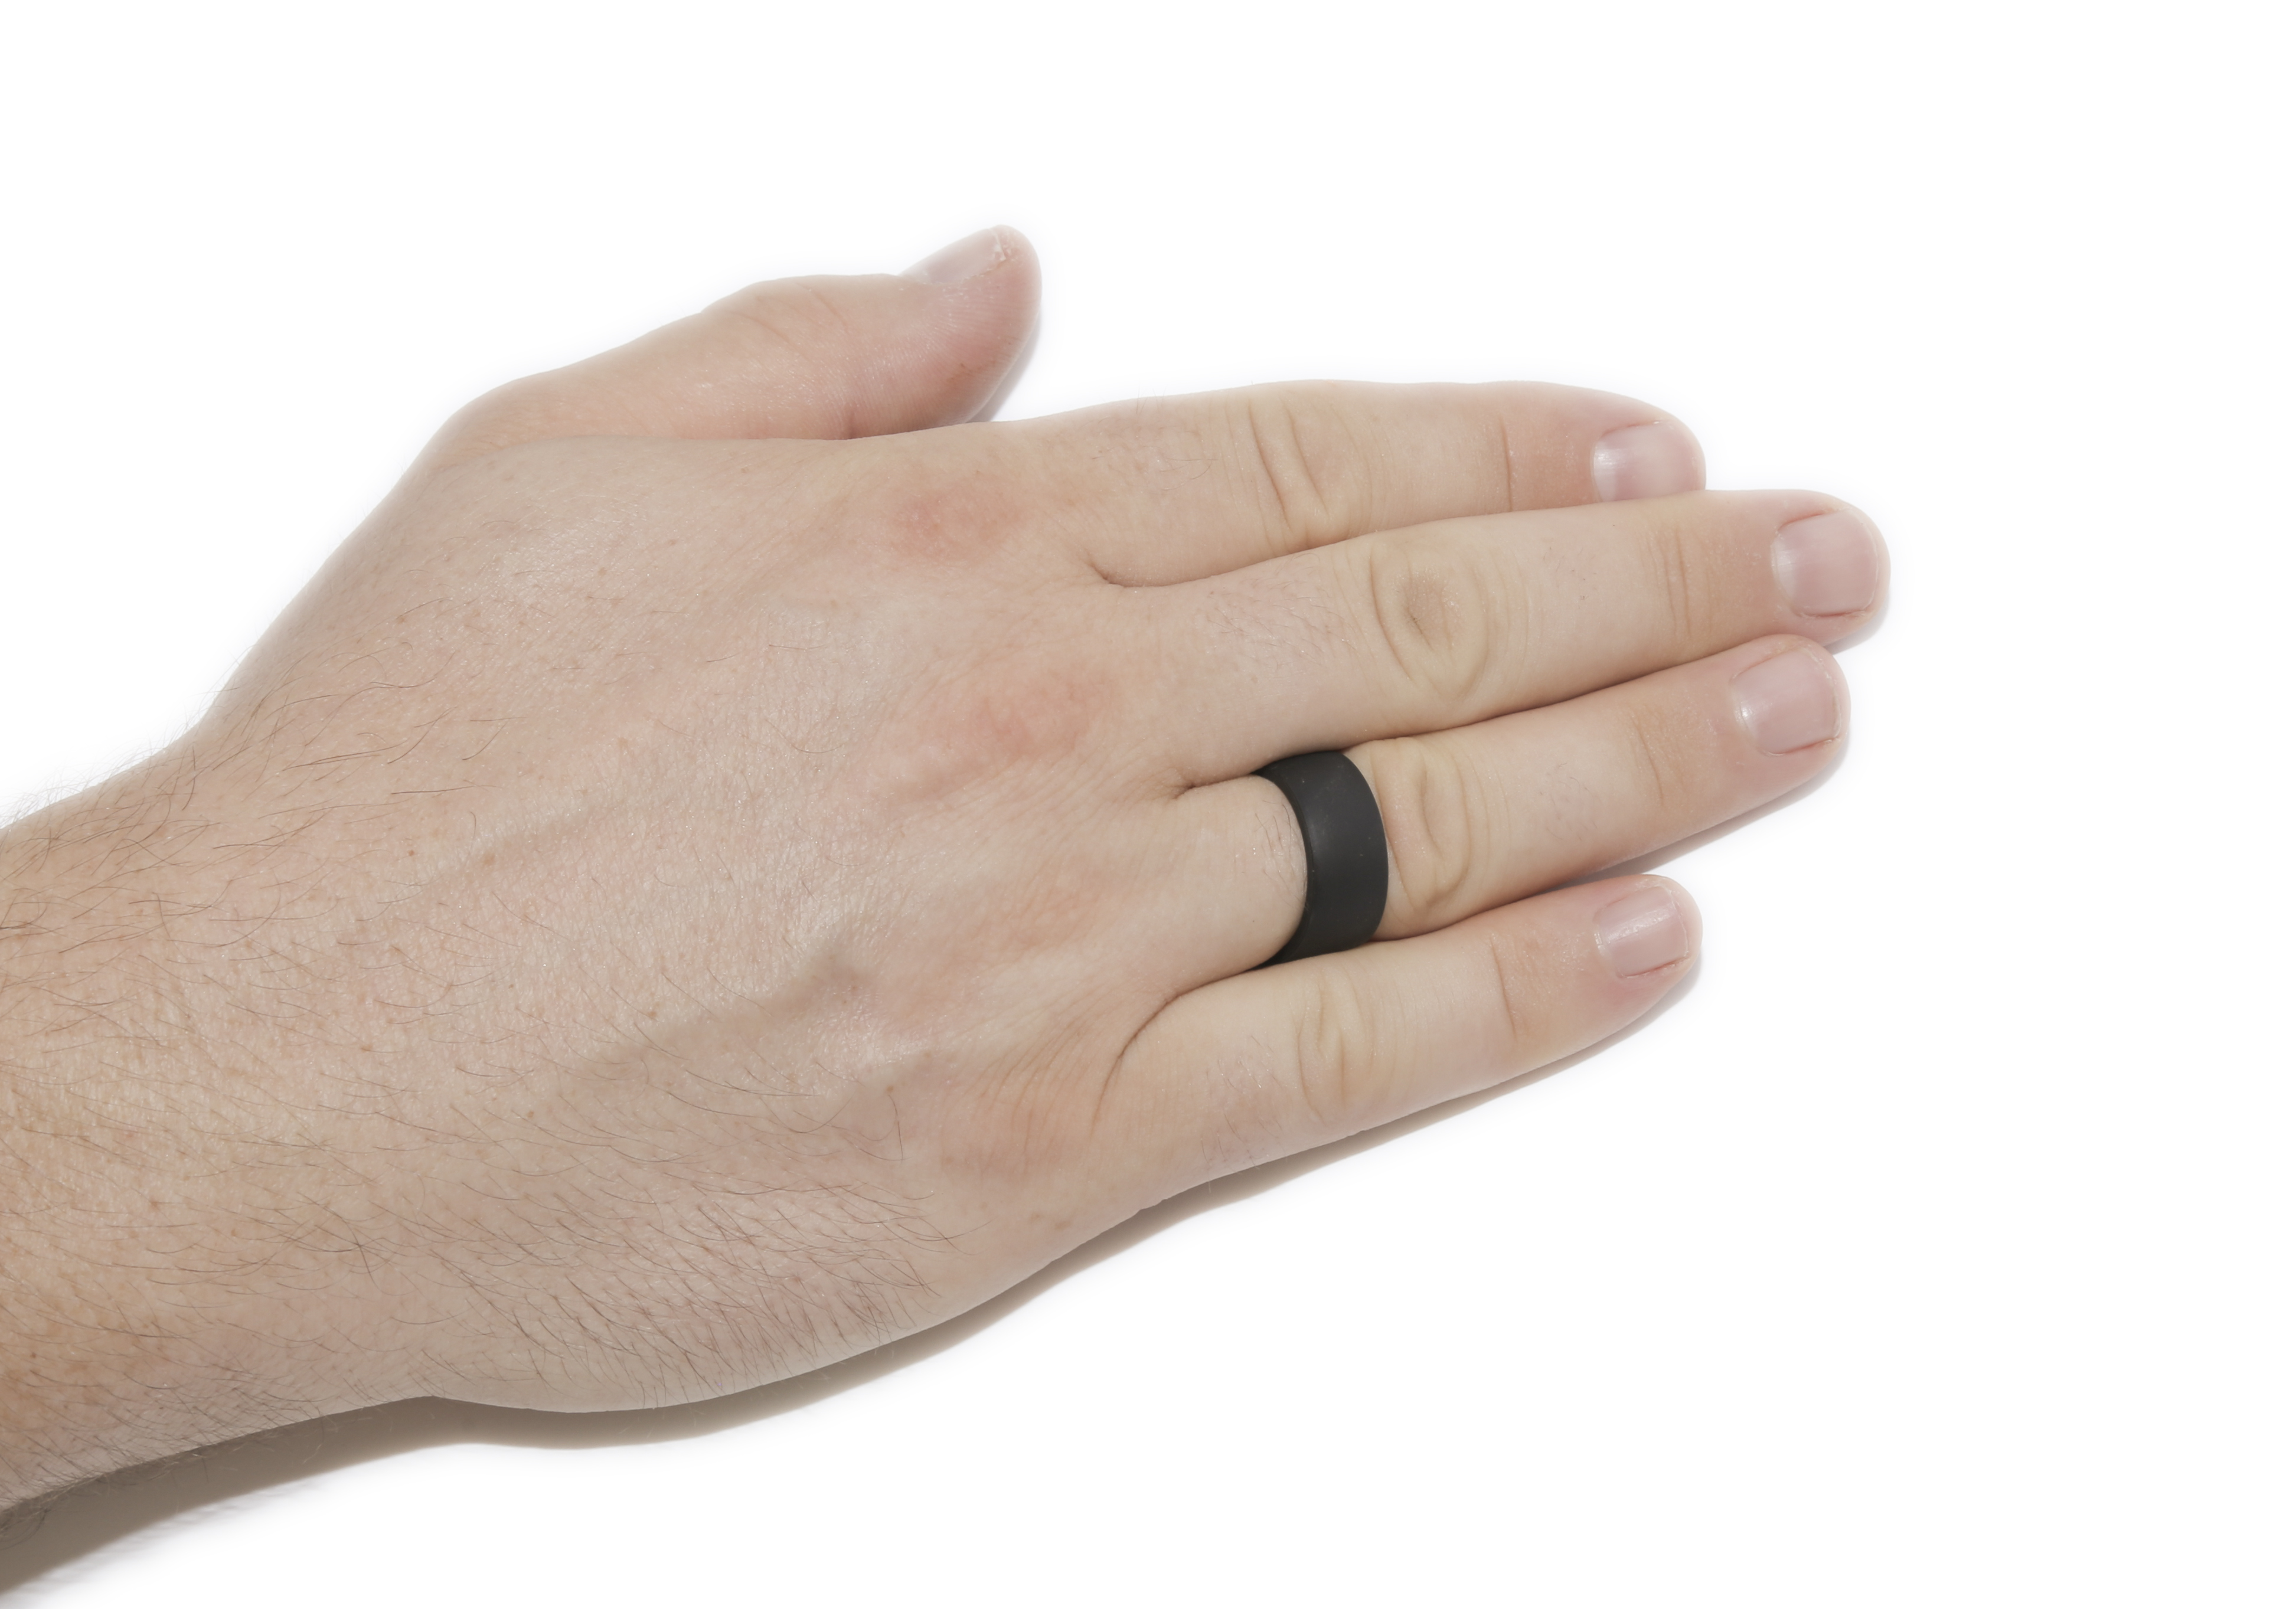 Every Ordained Minister Needs Silicone Wedding Rings On-Hand #WDGRNGONEPKG3